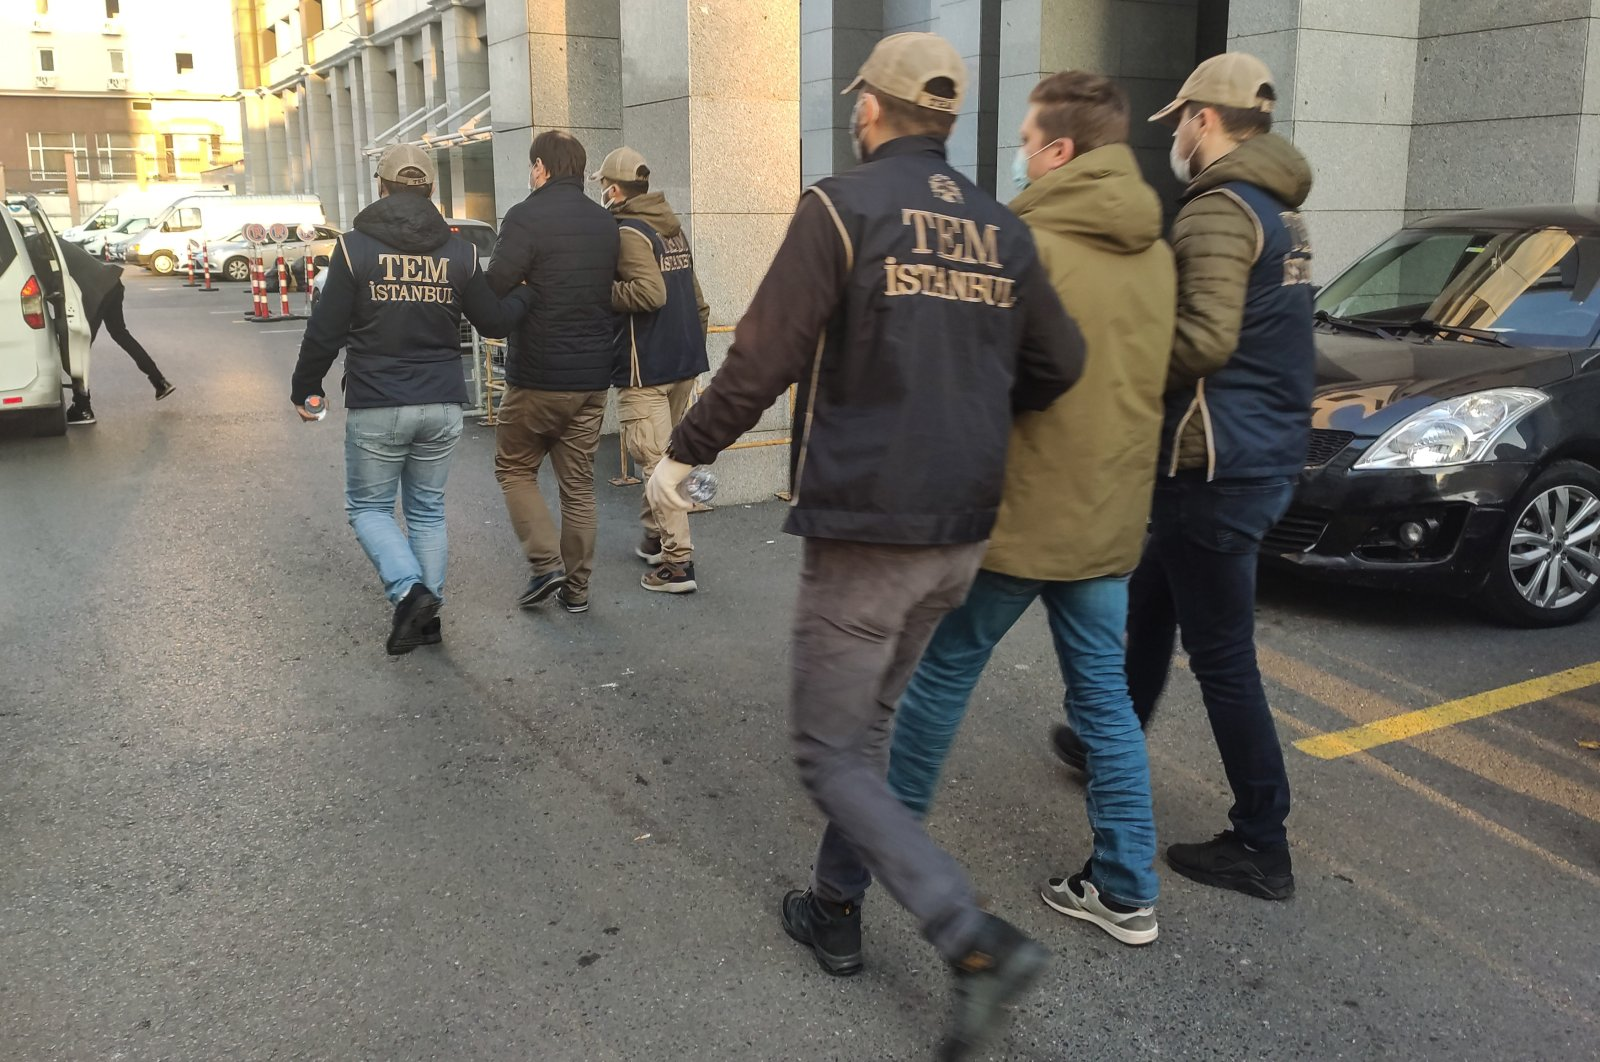 Police escort suspects to the courthouse, in Istanbul, Turkey, Dec. 7, 2020. (DHA PHOTO)